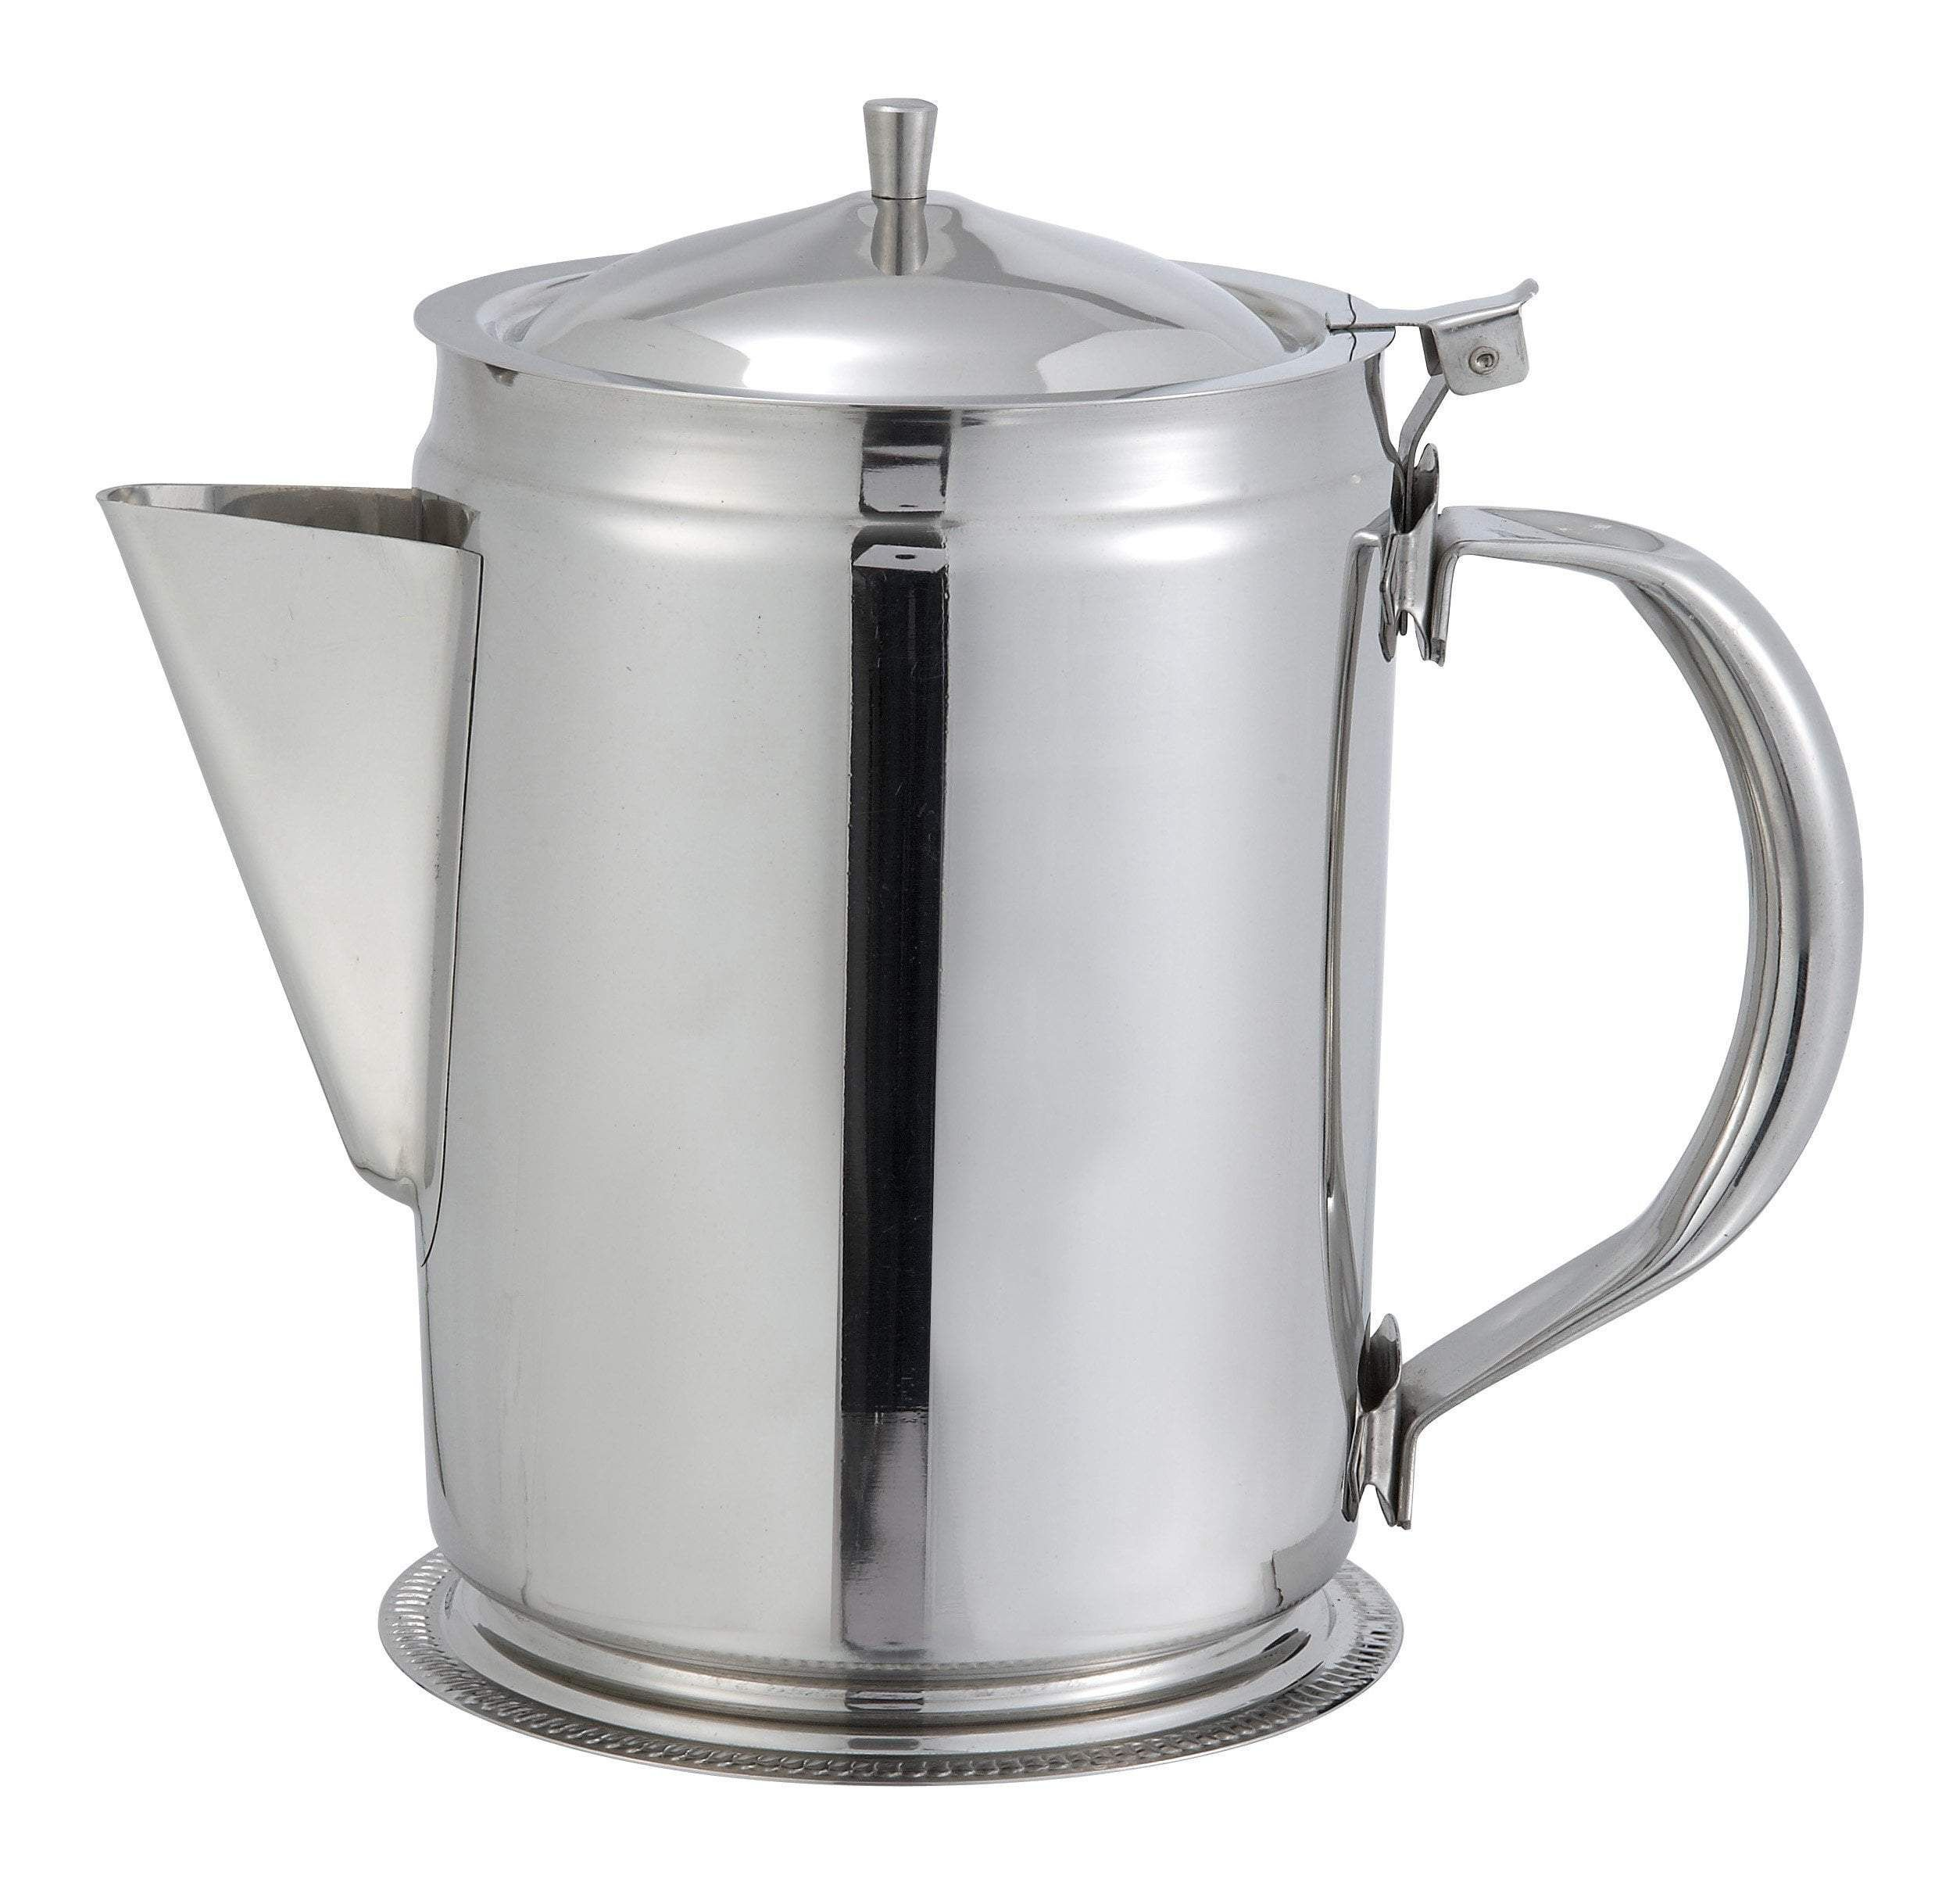 Winco - BS-64 - 64oz Coffee Server w/Cover, Stainless Steel - Beverage Service #coffeeserver Winco - BS-64 - 64oz Coffee Server w/Cover, Stainless Steel - Beverage Service #coffeeserver